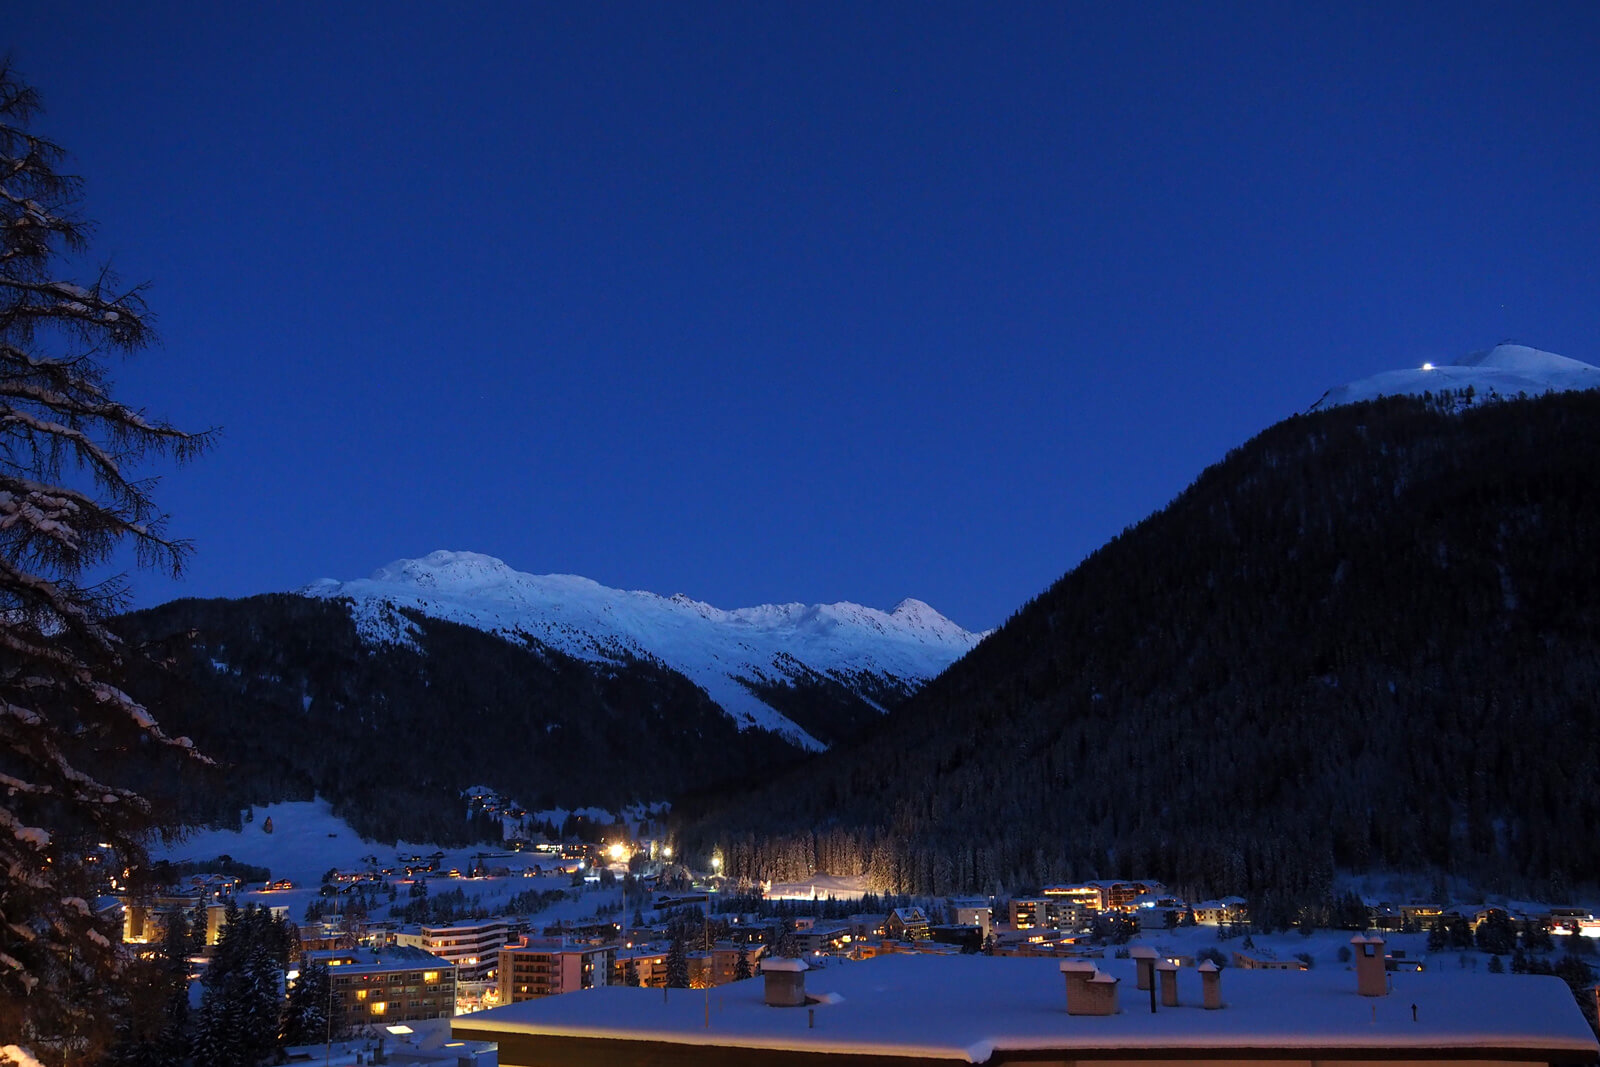 Davos, Switzerland - Night View